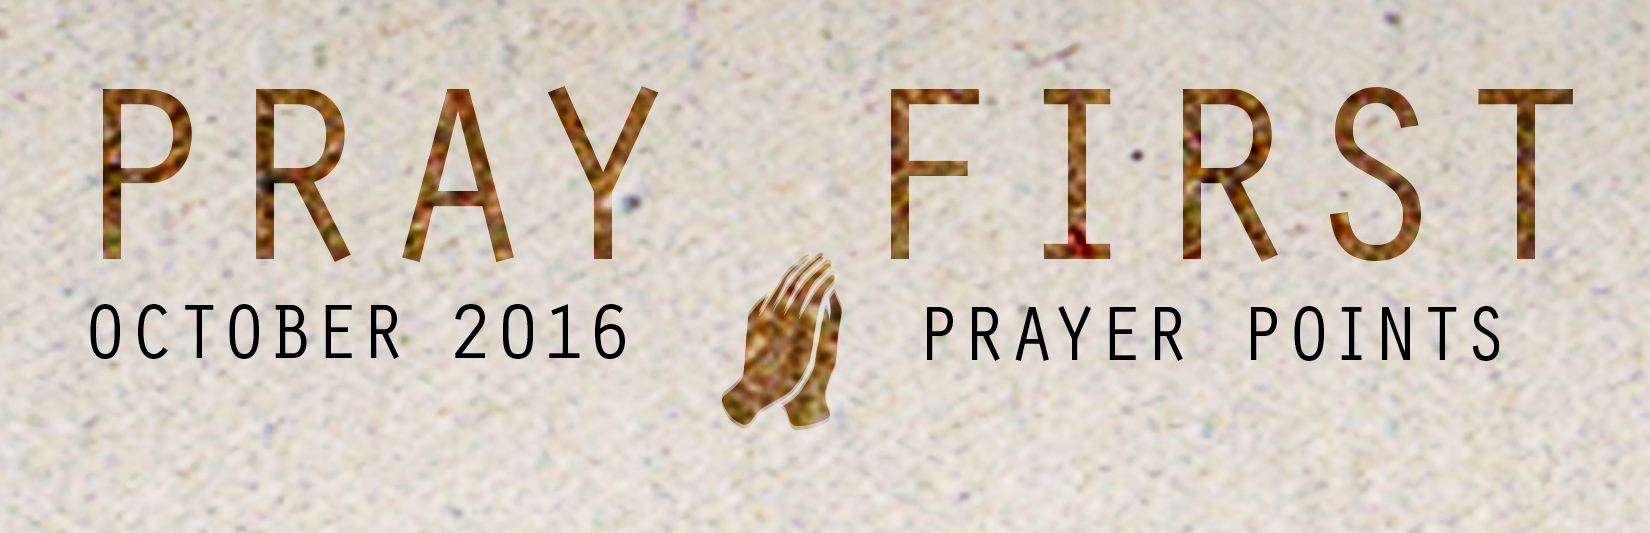 OCTOBER PRAY  ER POINTS    Access your copy of the October 2016 Prayer   Points  HERE !